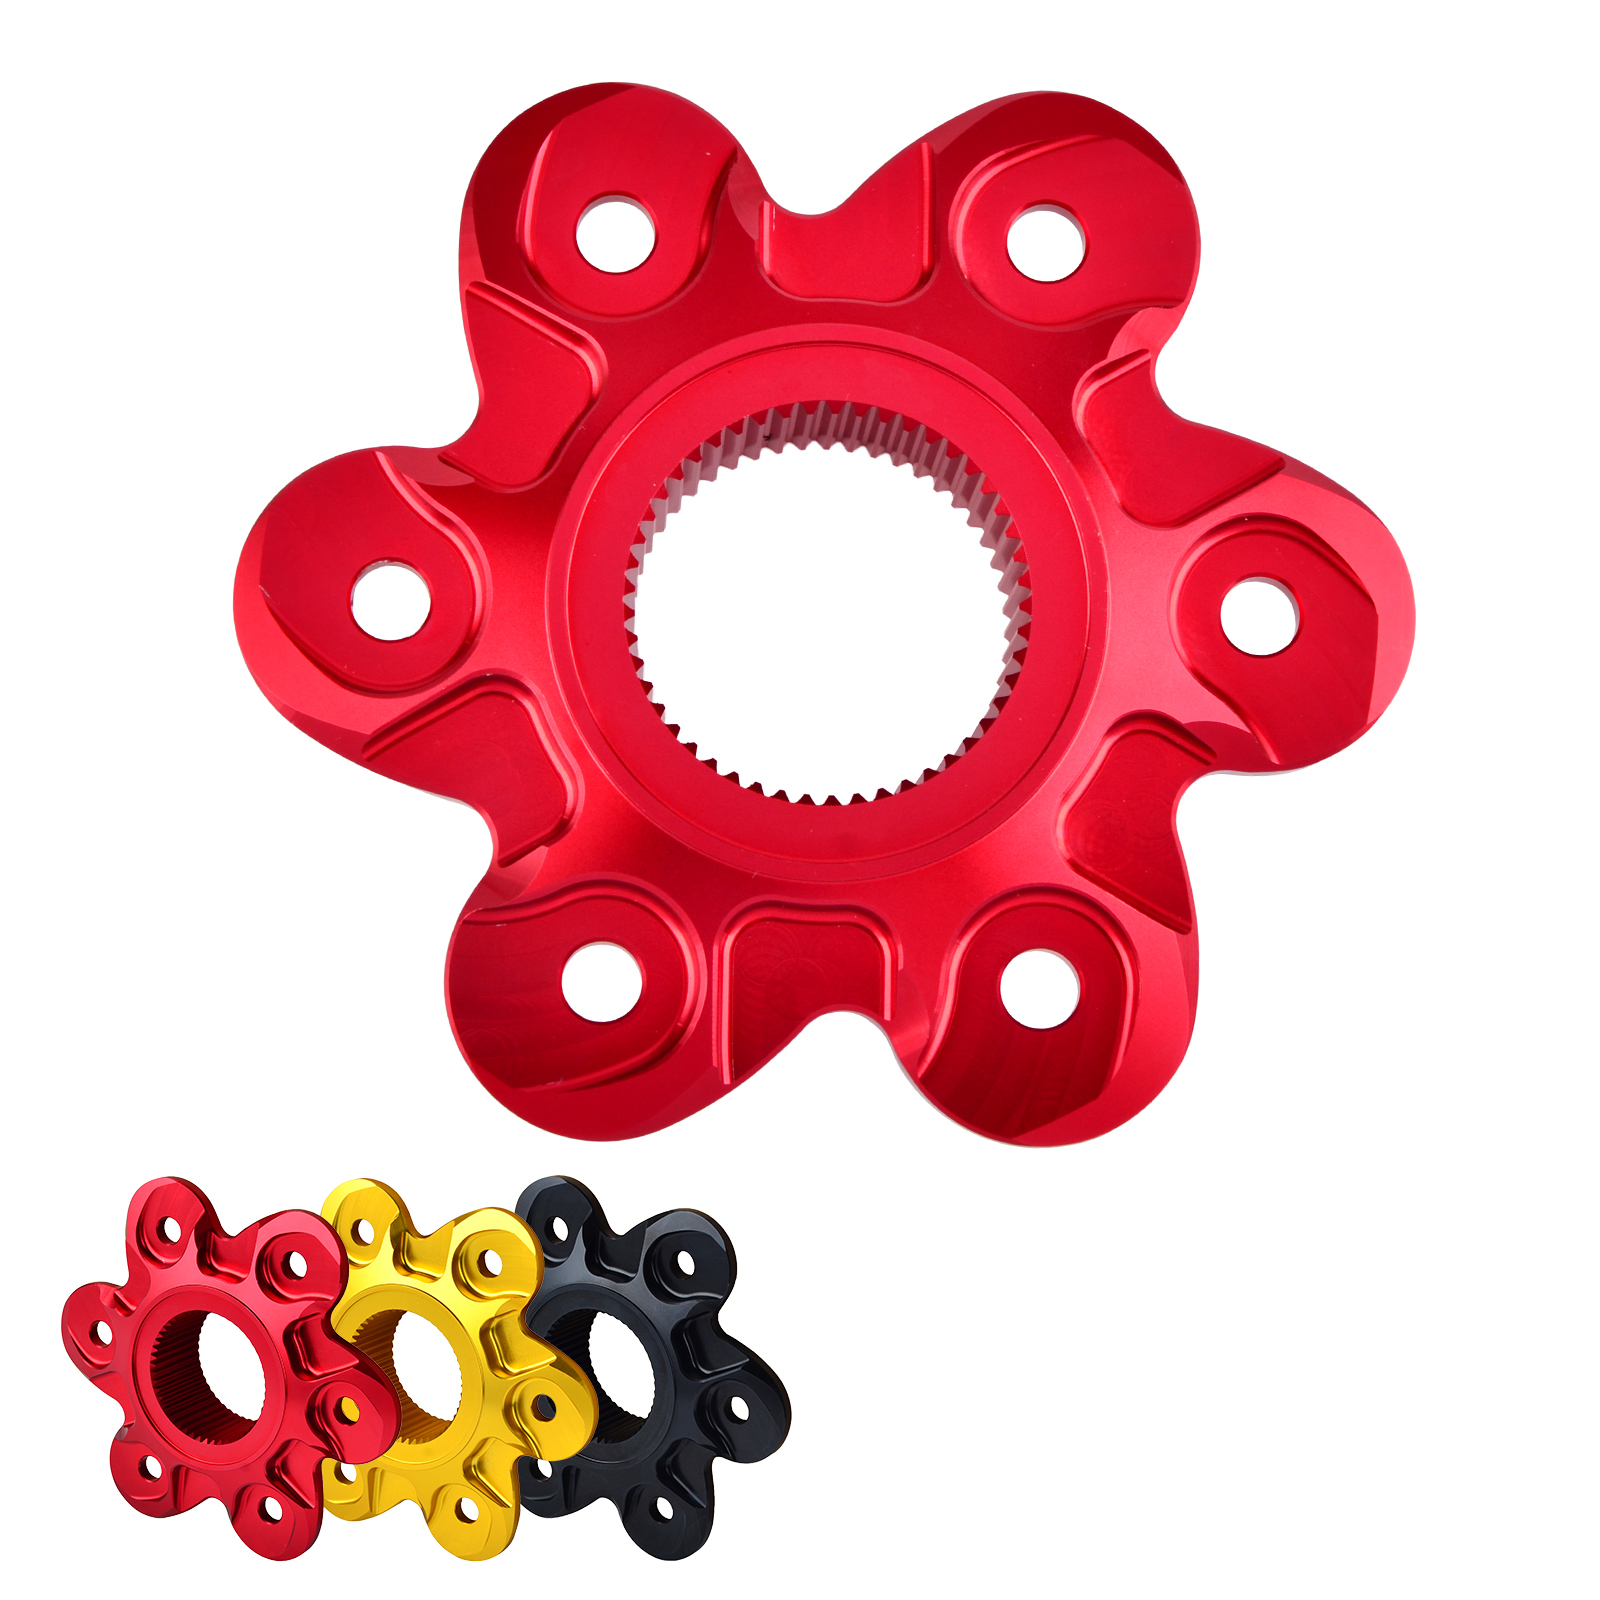 H2CNC Rear Sprocket Drive Flange Cover For Ducati 1299 1199 Panigale R S Monster 1200 R